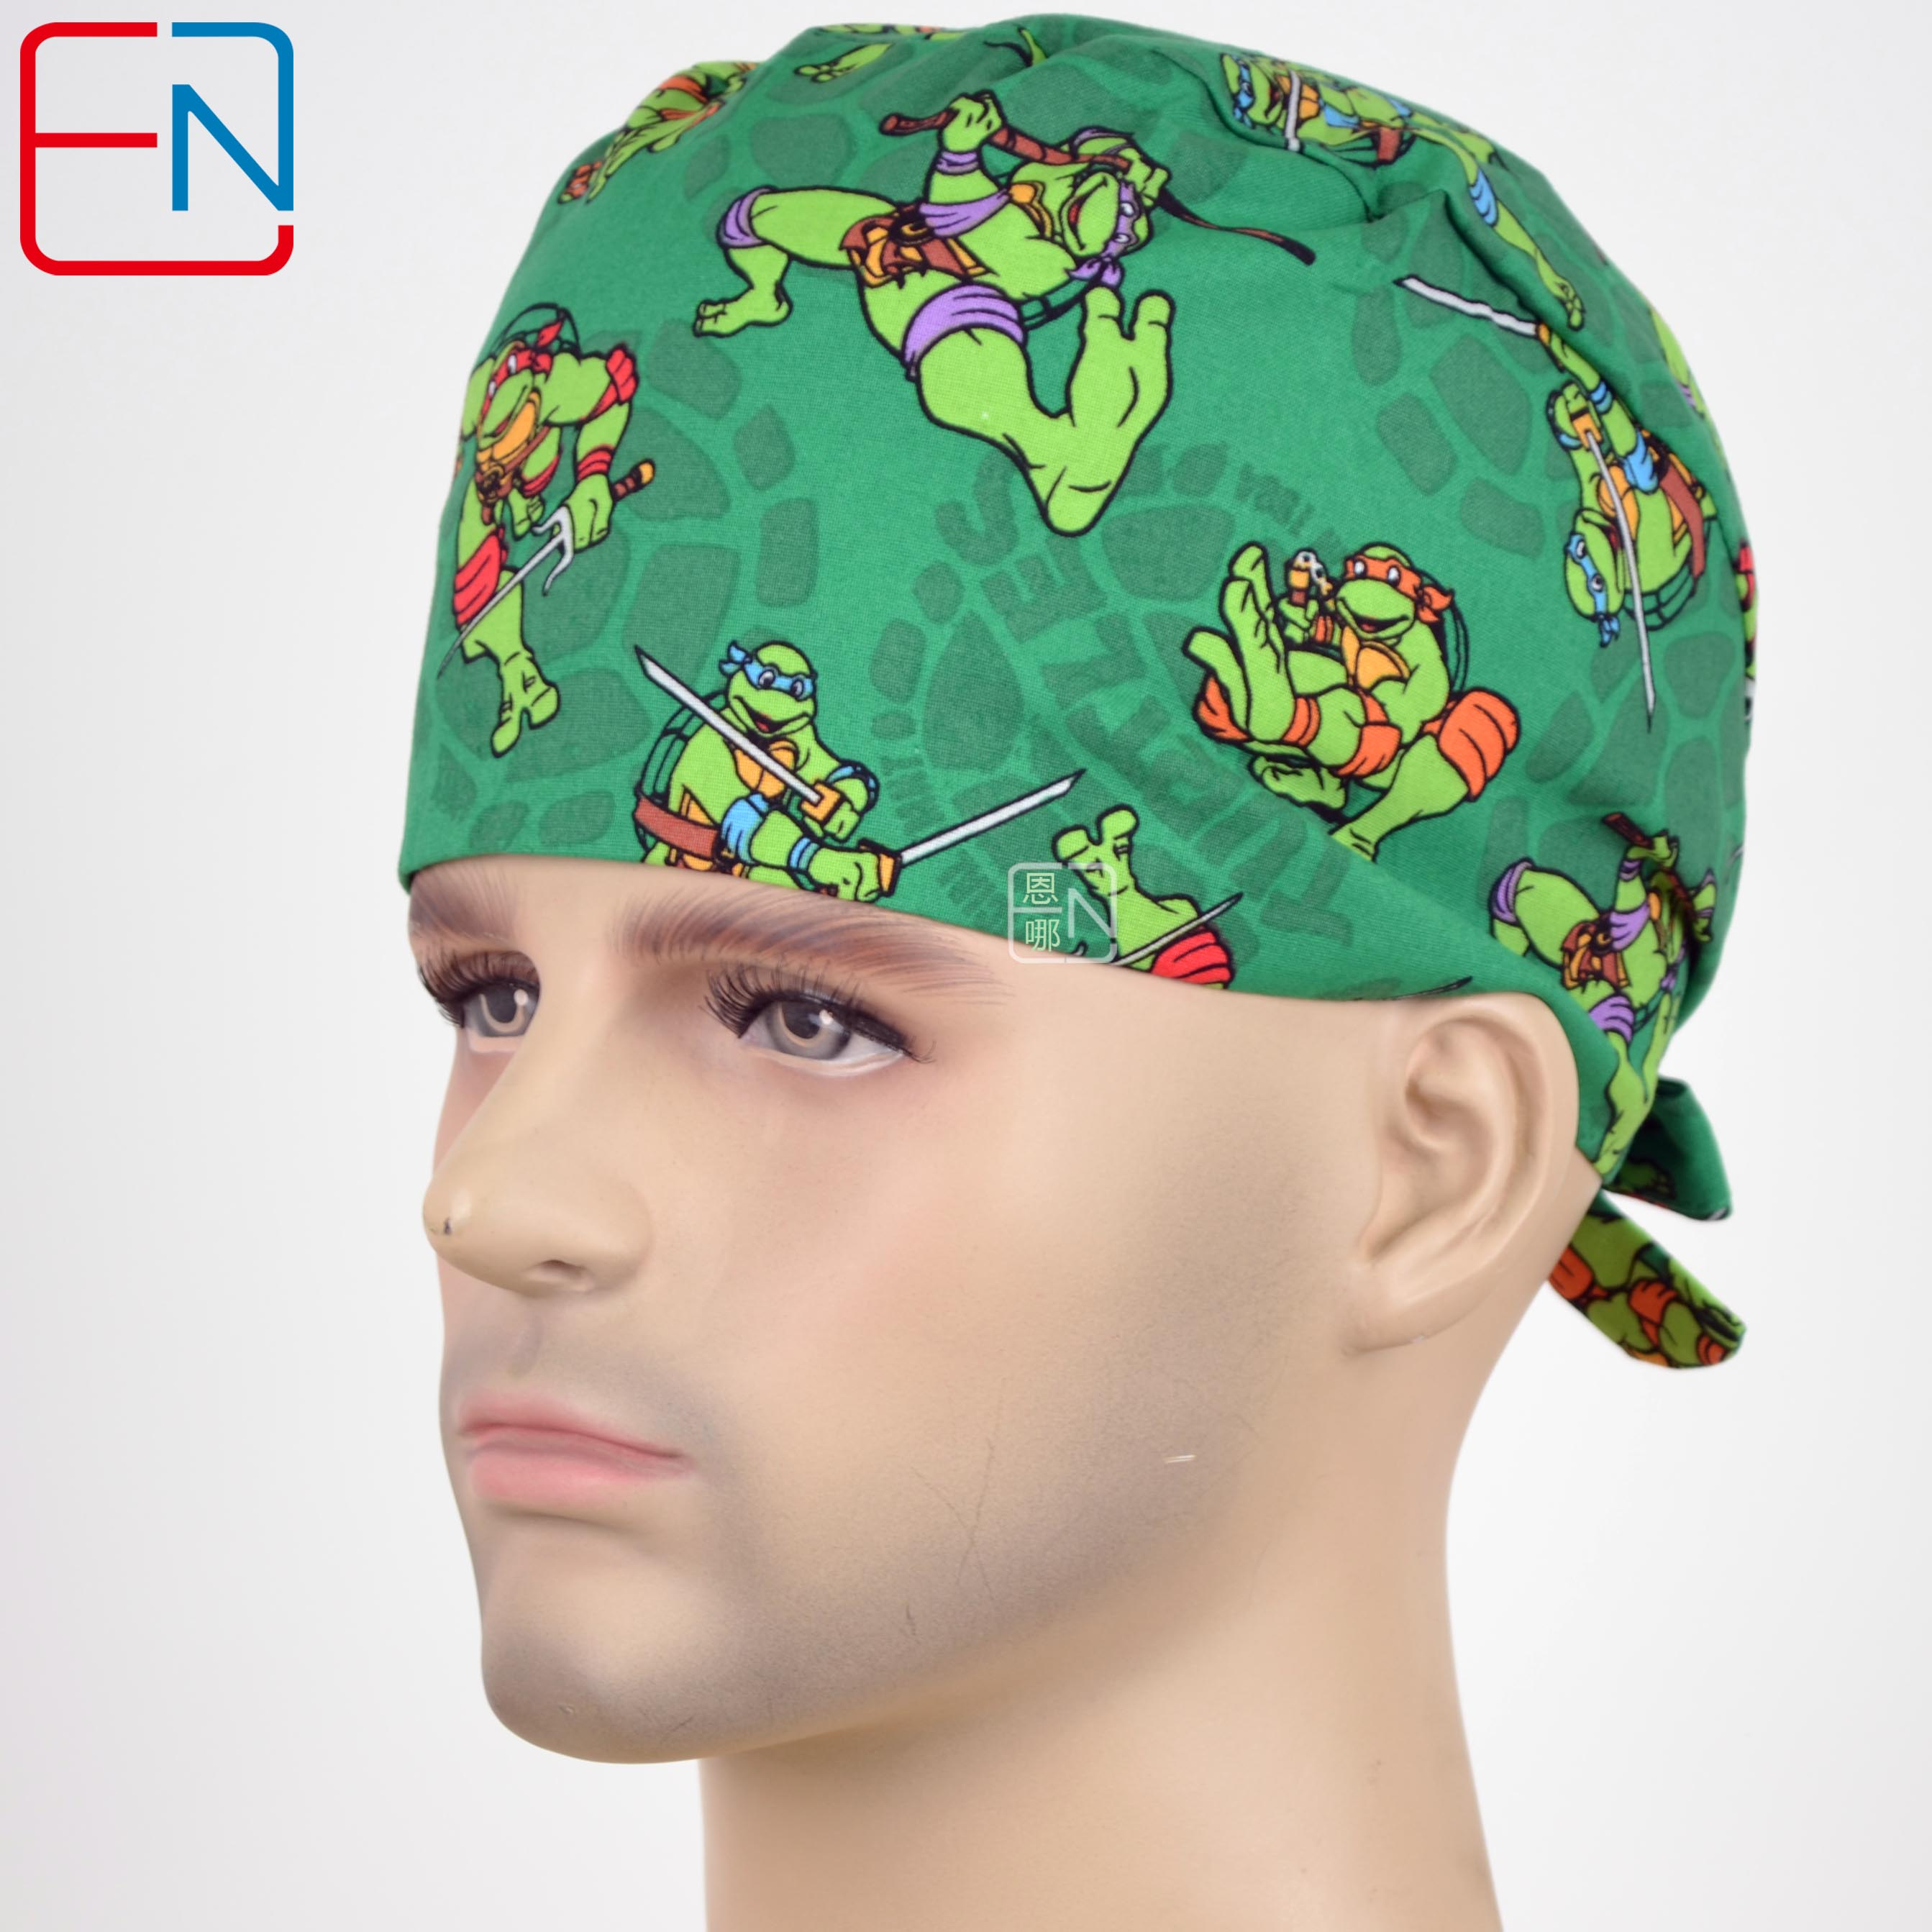 Surgical Caps Surgery Cap  Surgical Hats Medical Caps For Men And Men Scrub Caps